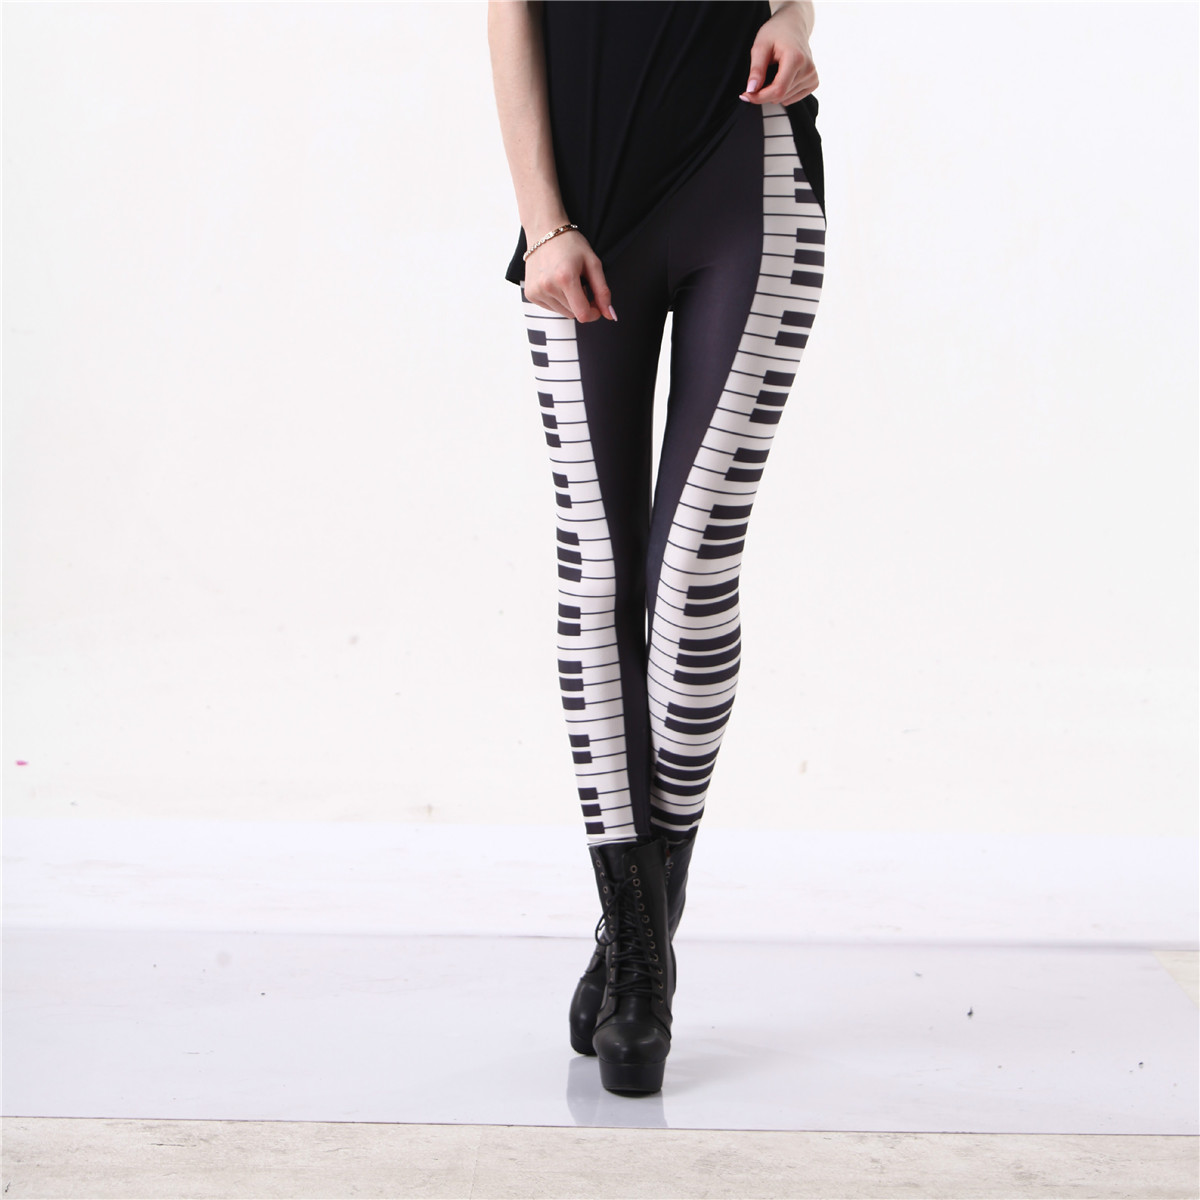 Pants & Capris Sexy Womens Skinny Camouflage Punk Funky Leggings Stretchy Pencil Pants Hot Sale Hottest